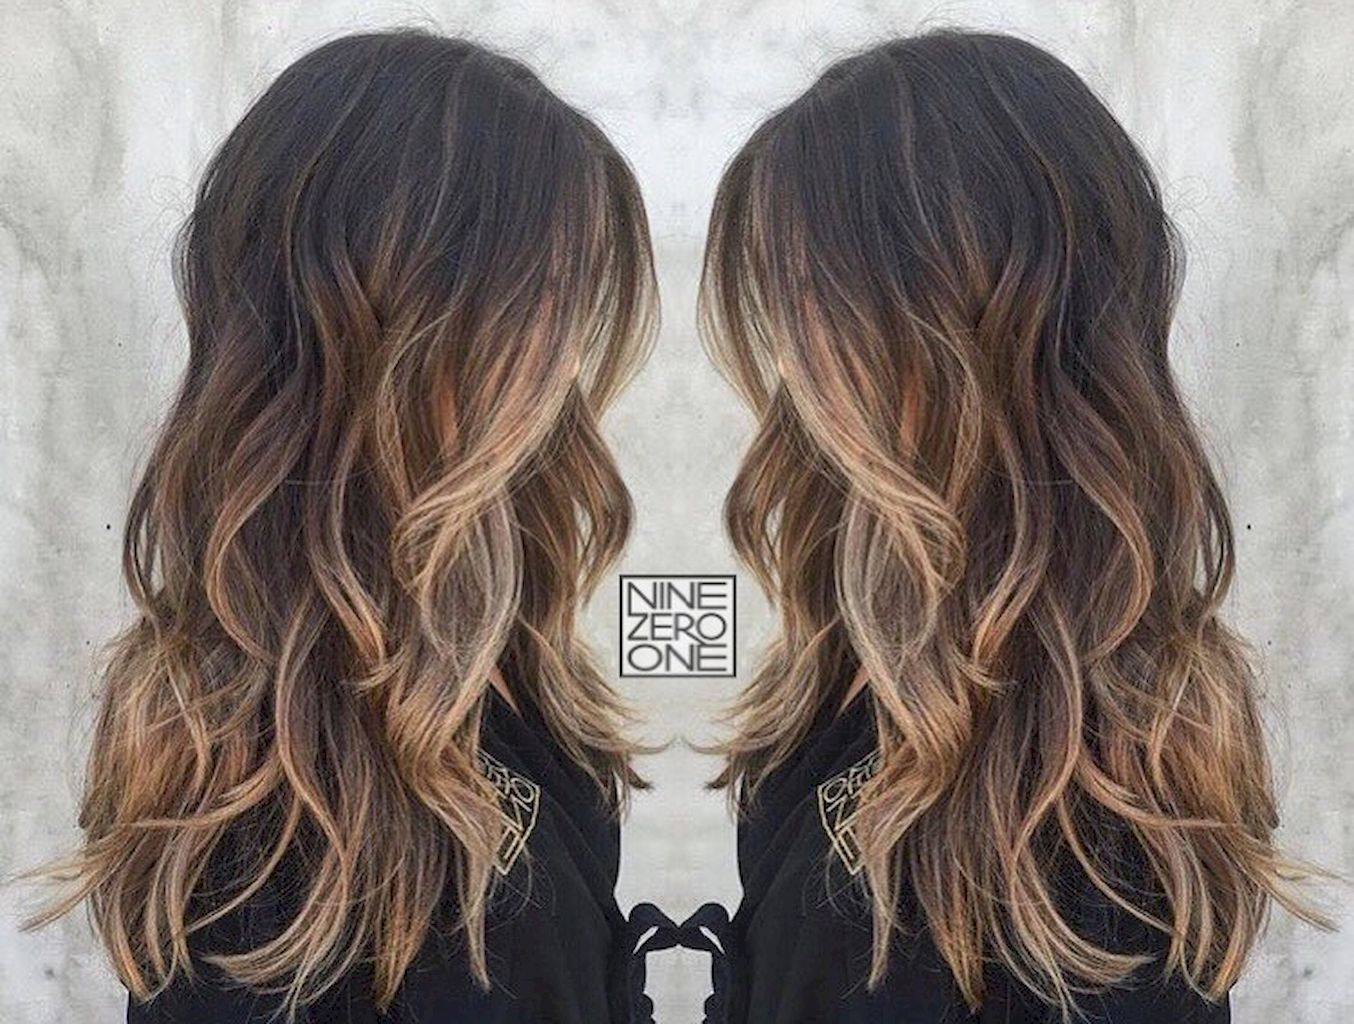 78 Hottest Balayage Hair Color Ideas For Brunettes Hairstyles